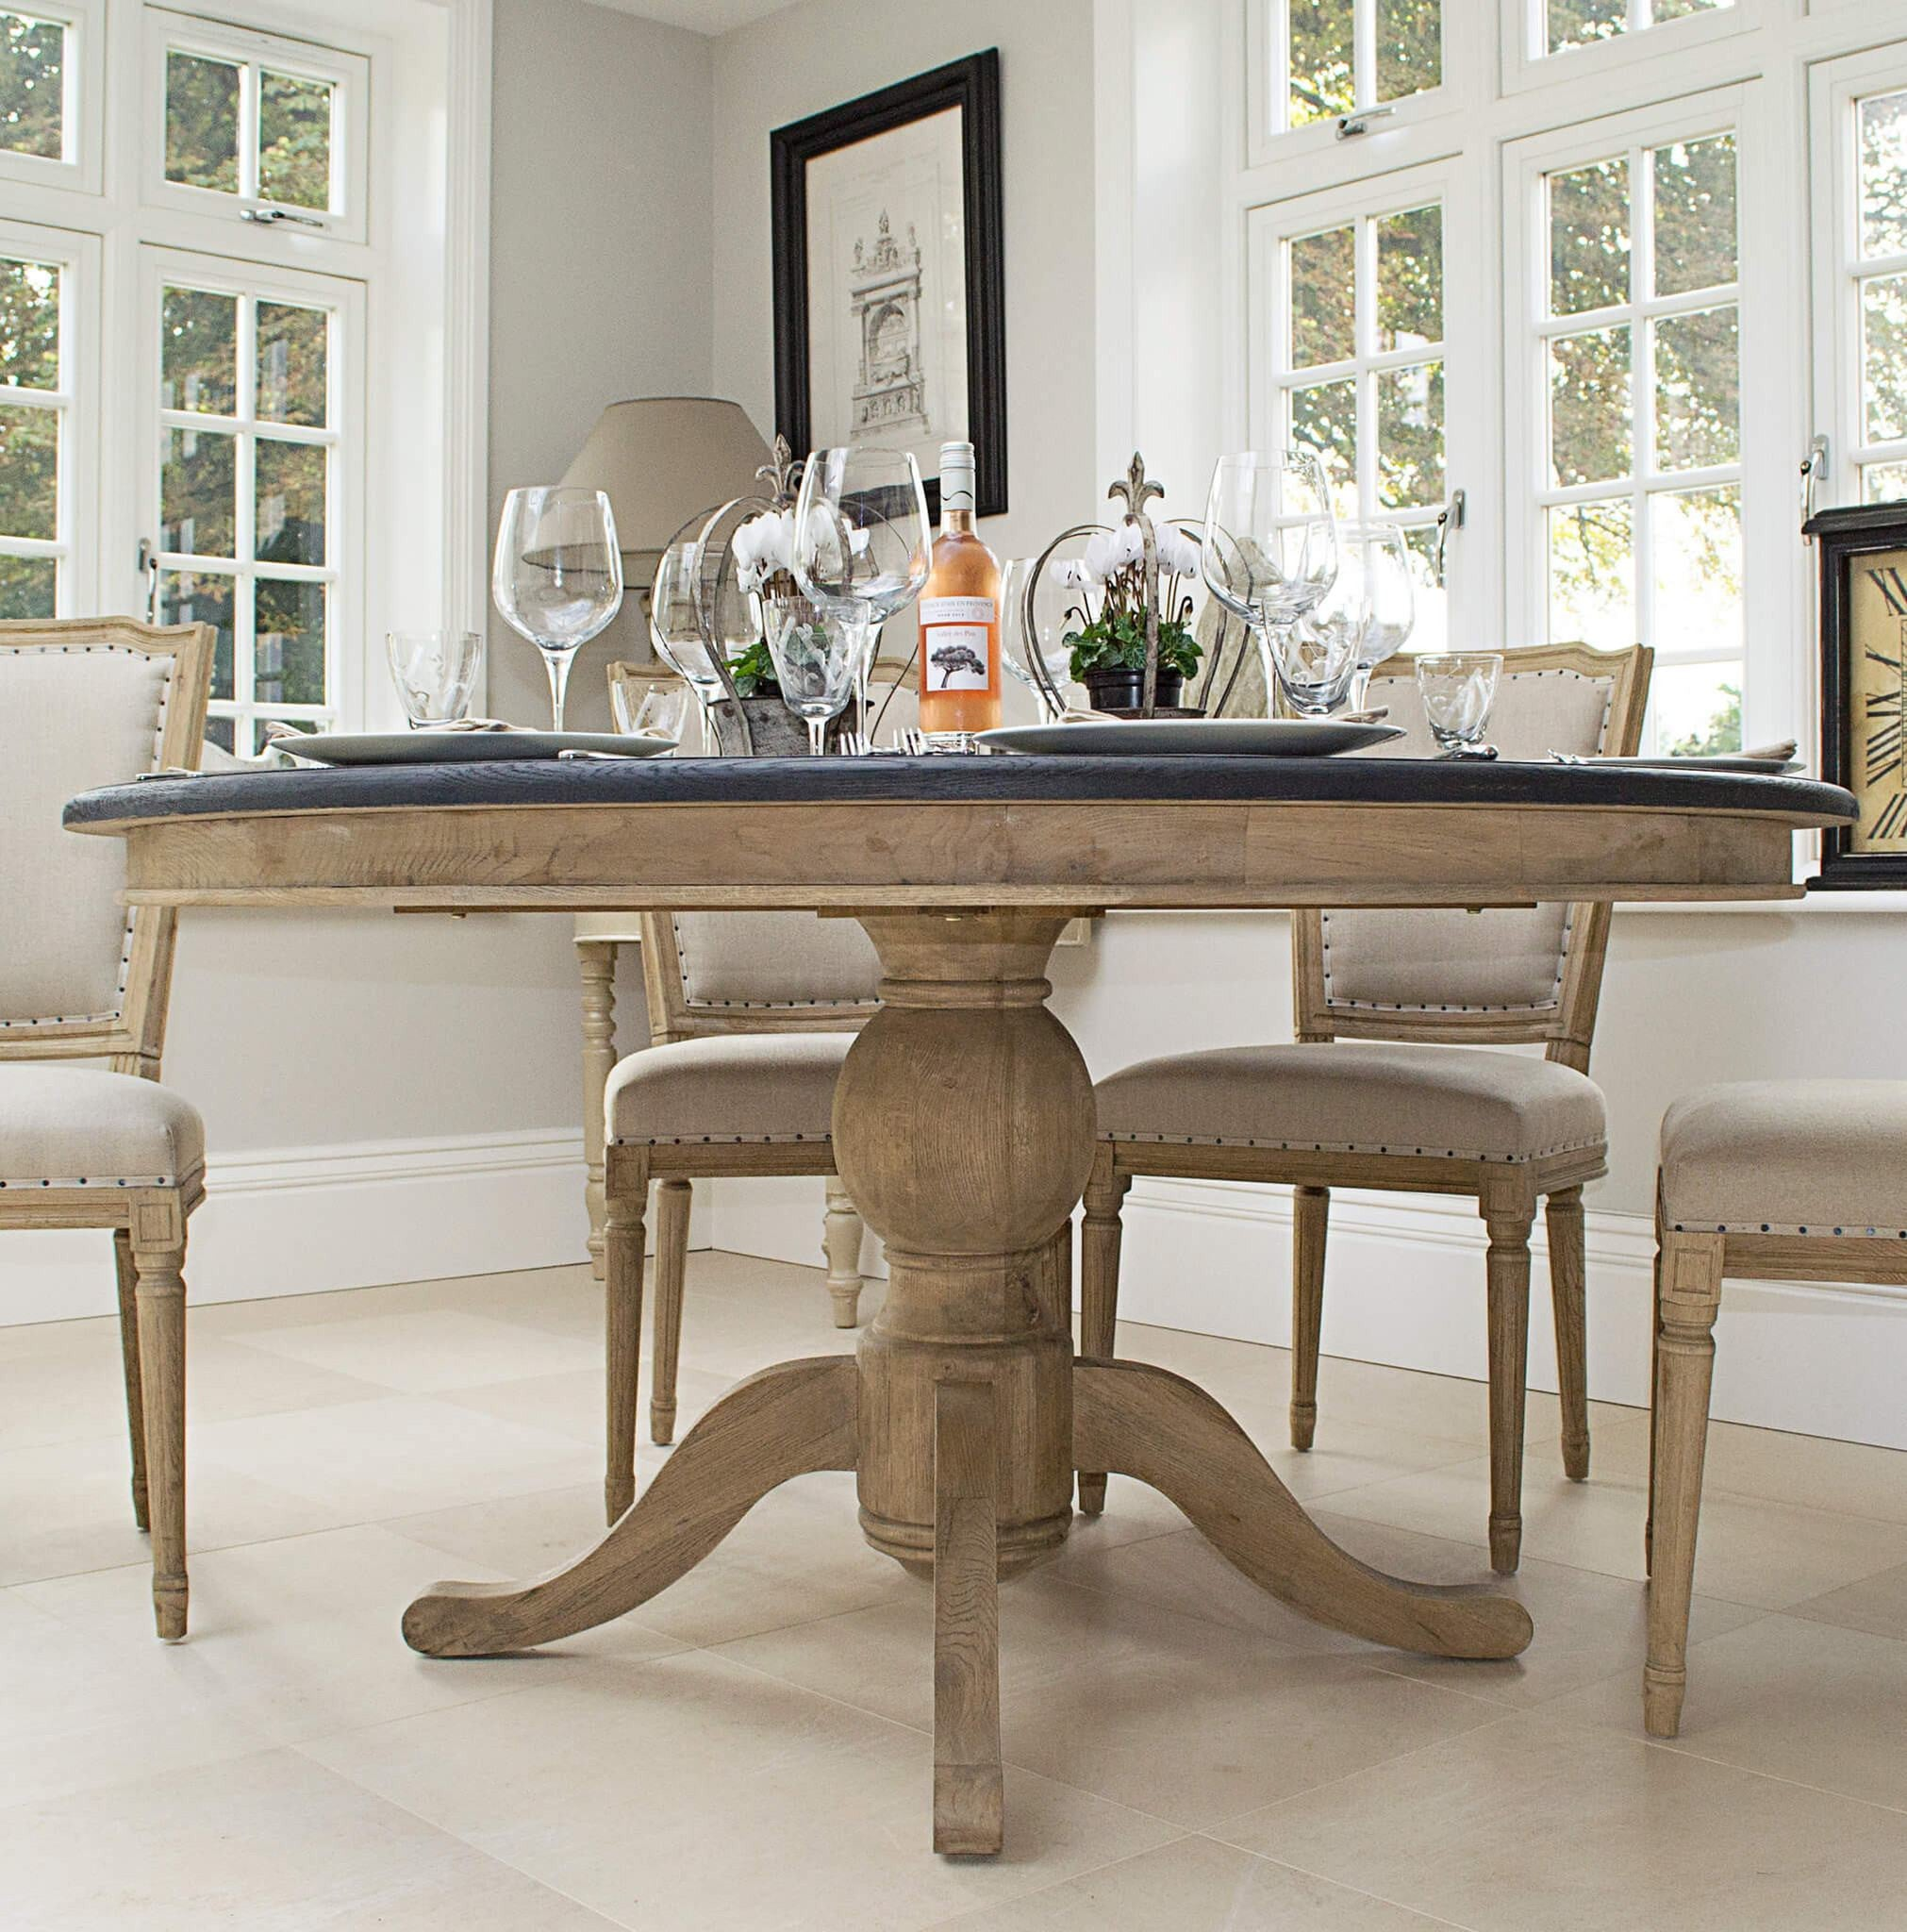 Belmont Oval Dining Table Black Painted Top La Residence Interiors